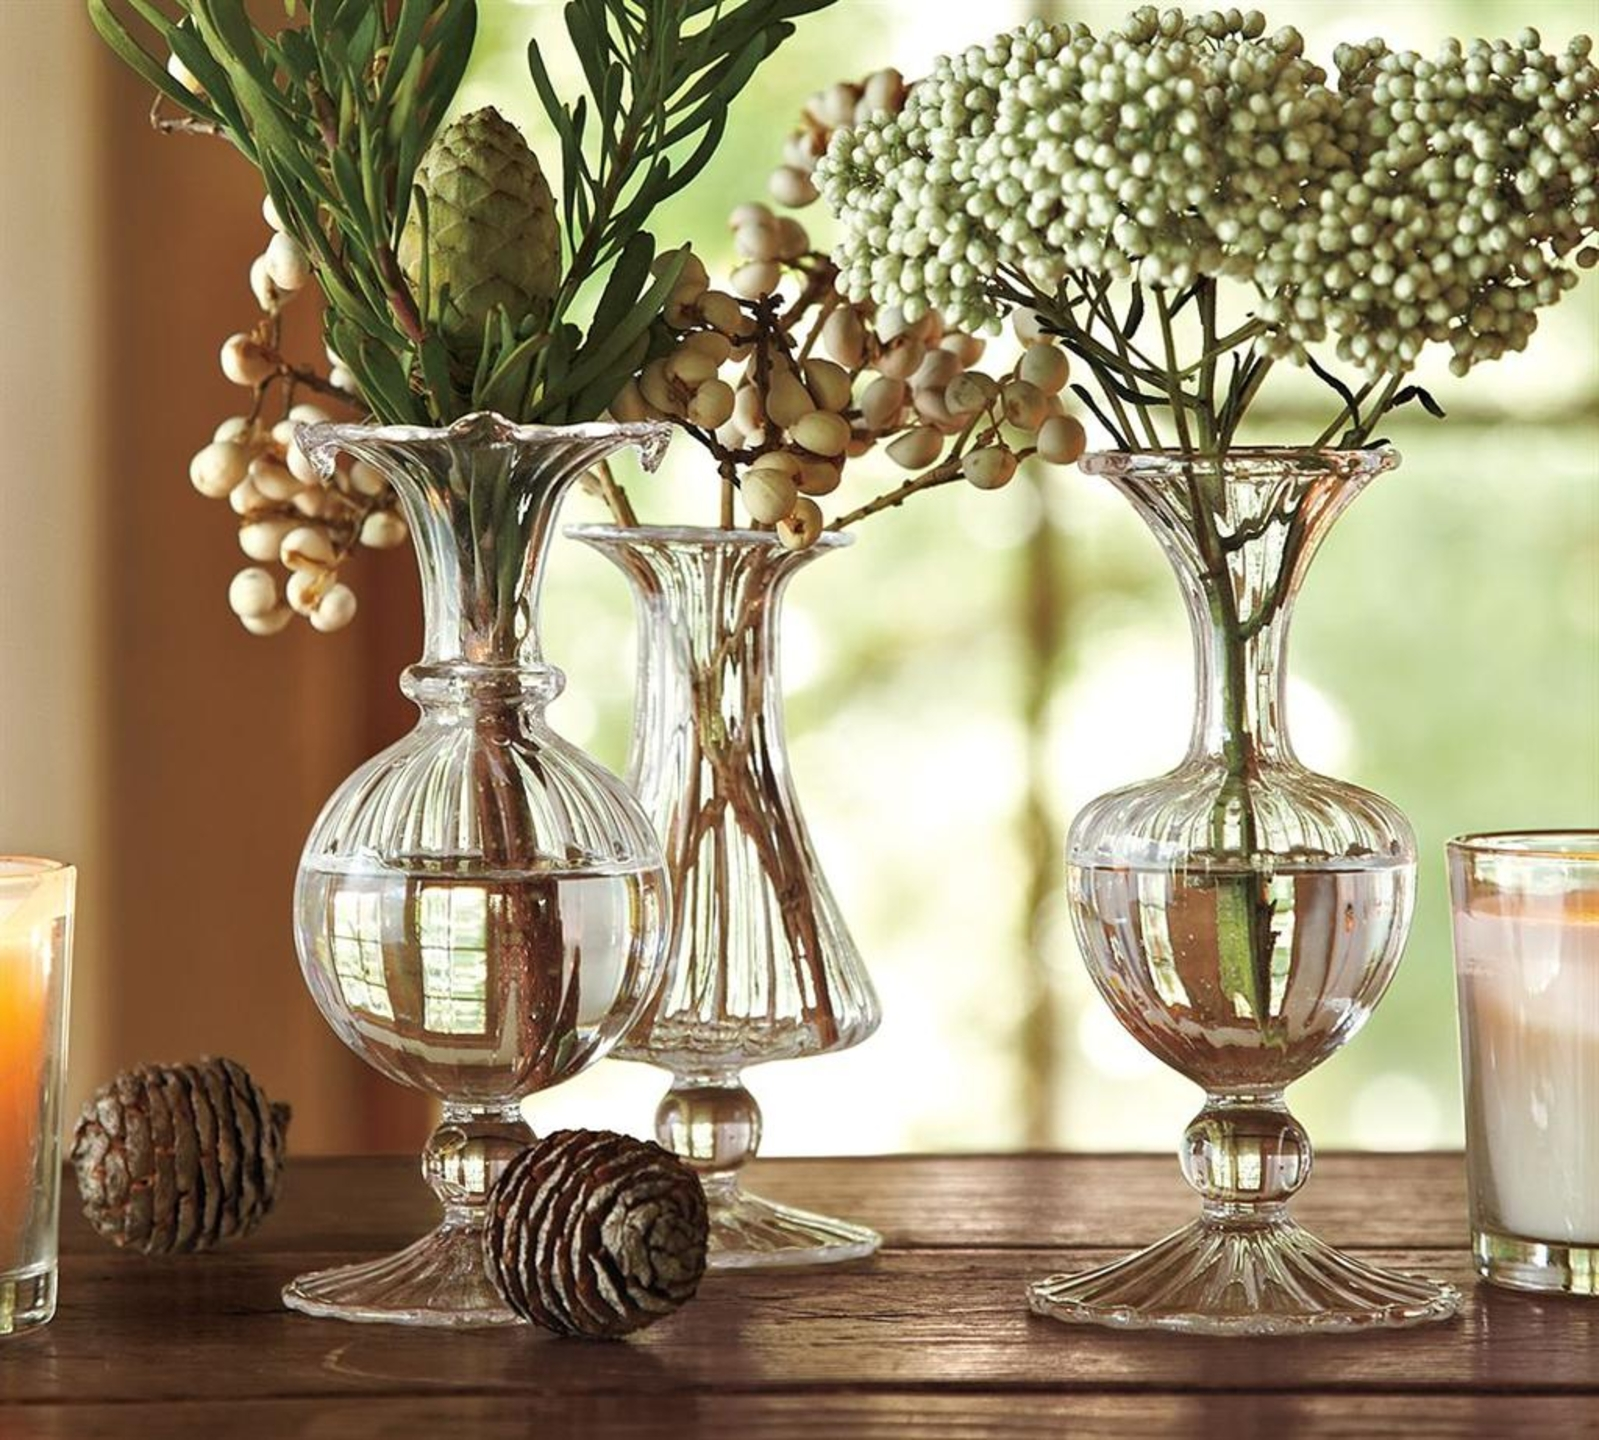 Bride Wife Mom Xmas Decor And Decorations For Your Home